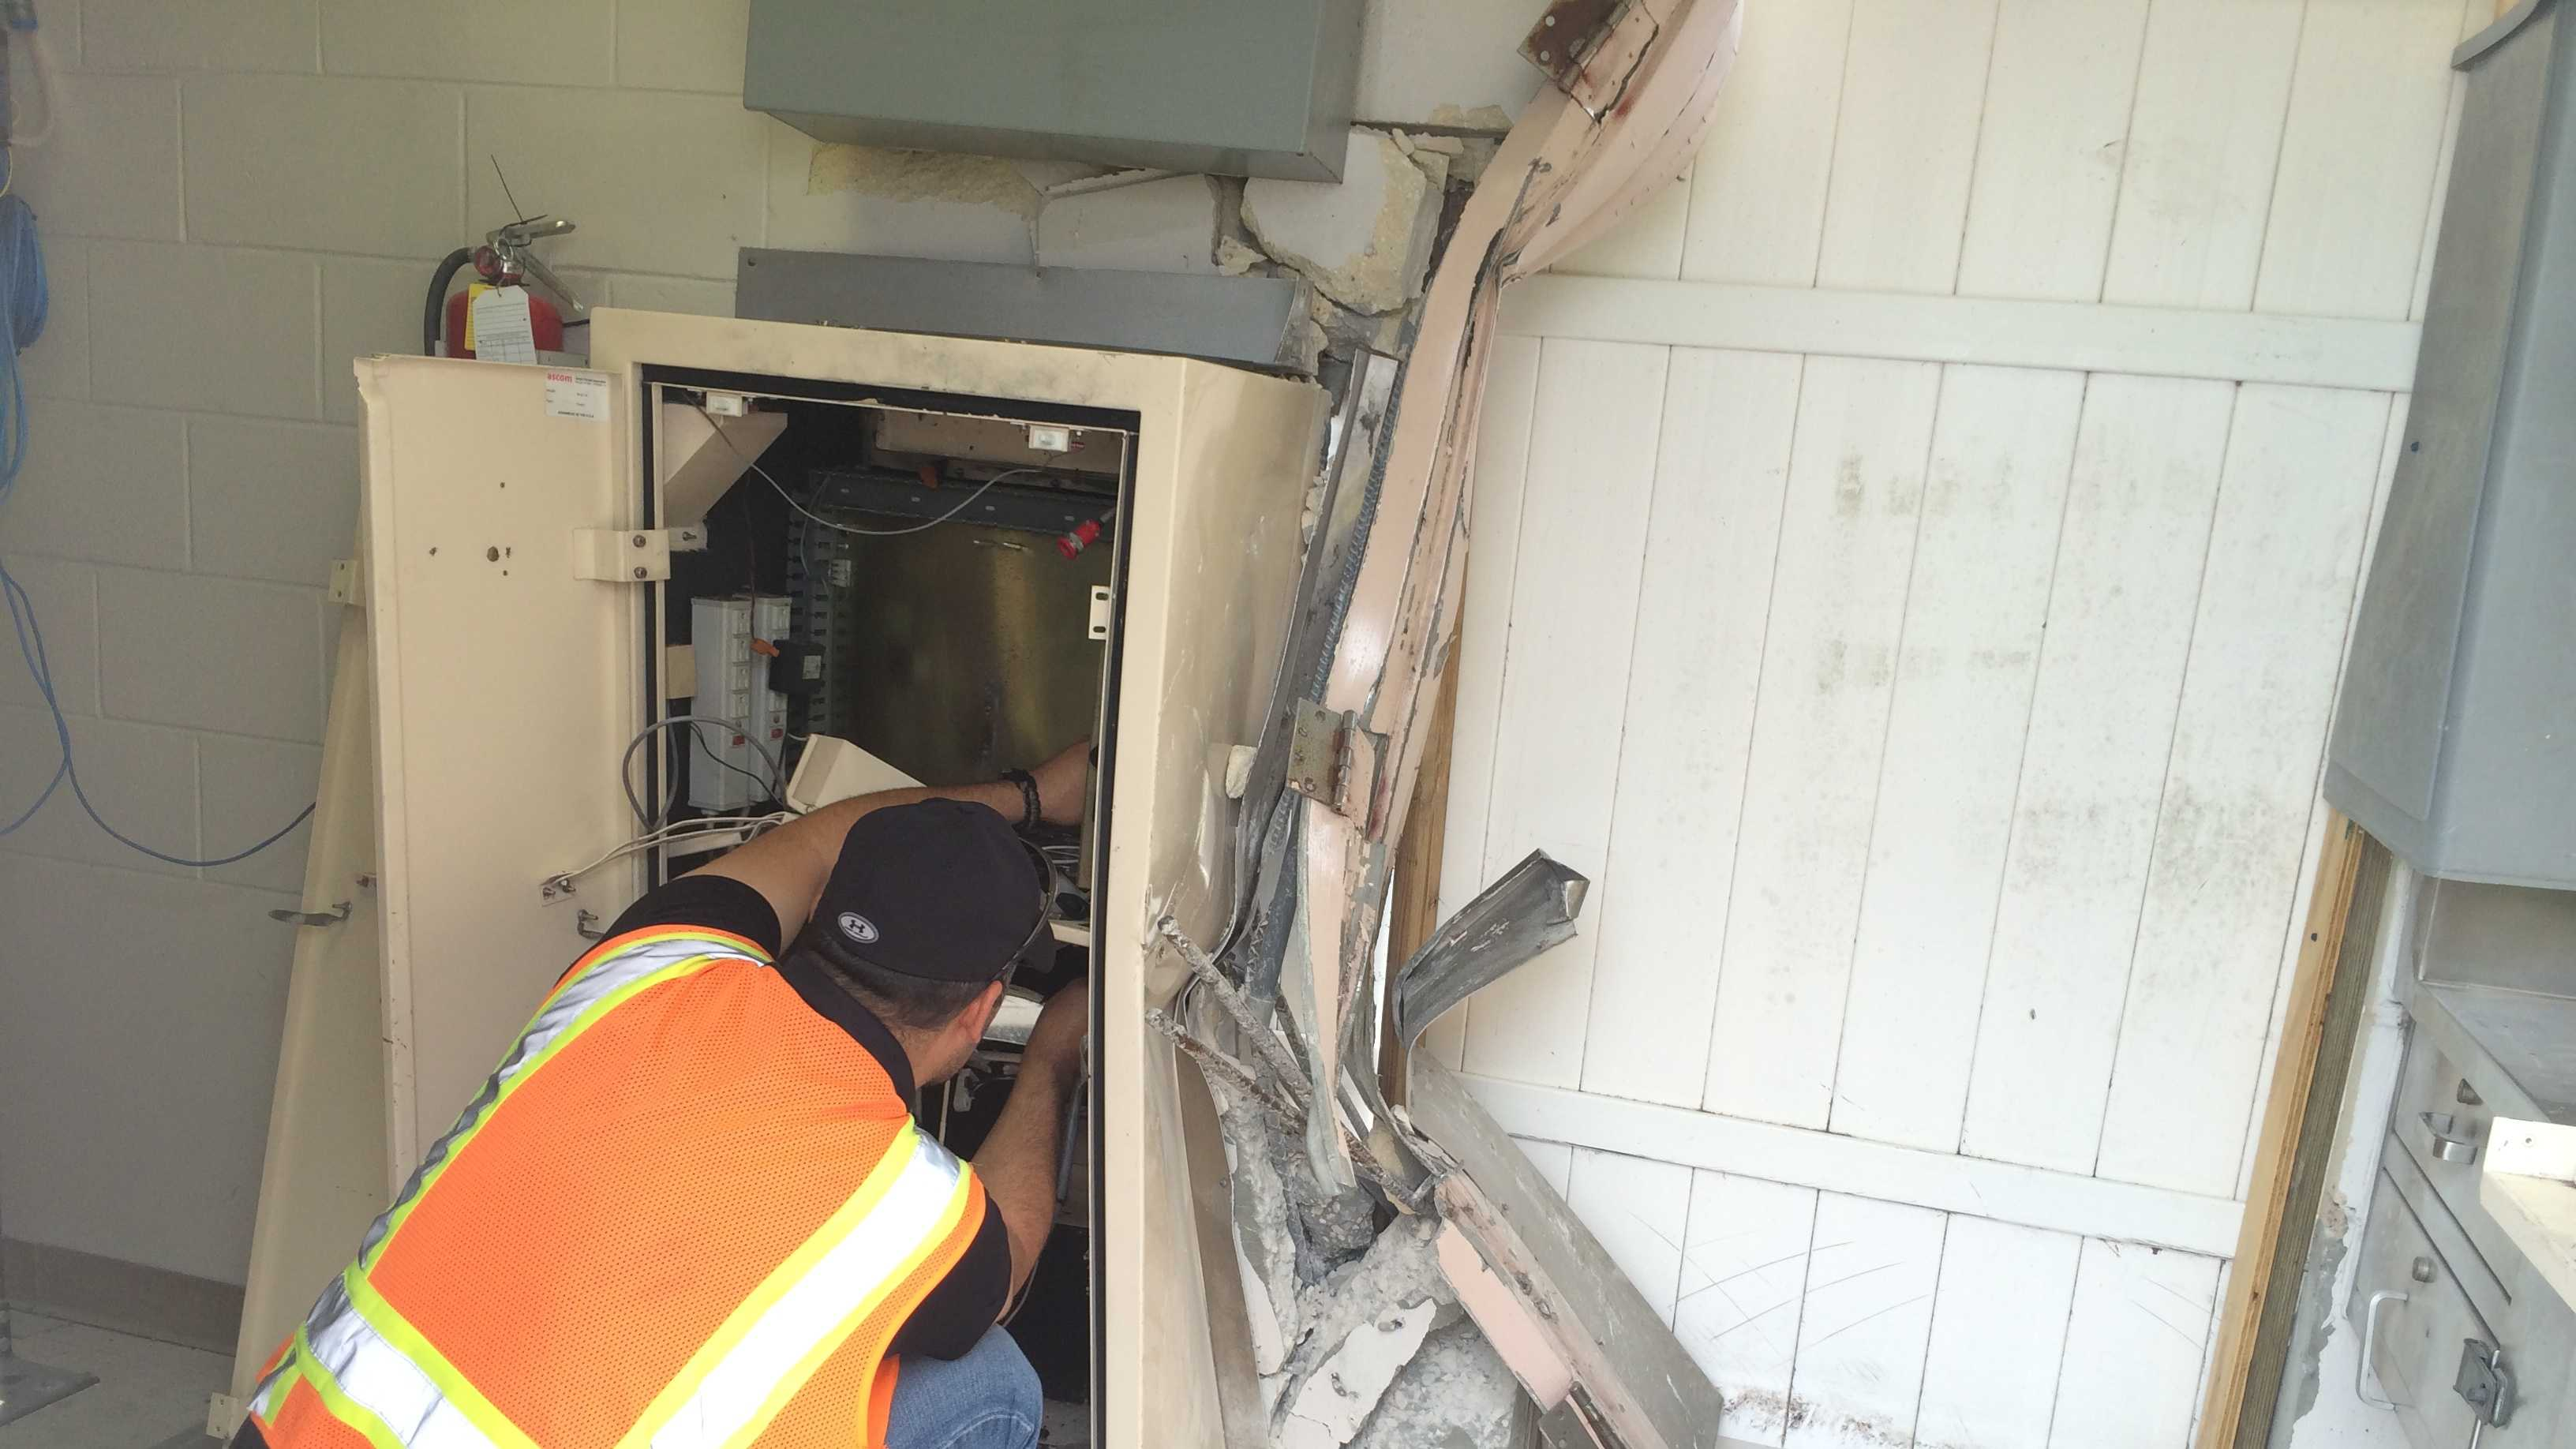 A thief smashed their car into the bill-changing machine at a southbound toll plaza on State Road 417 and stole the machine, authorities said.